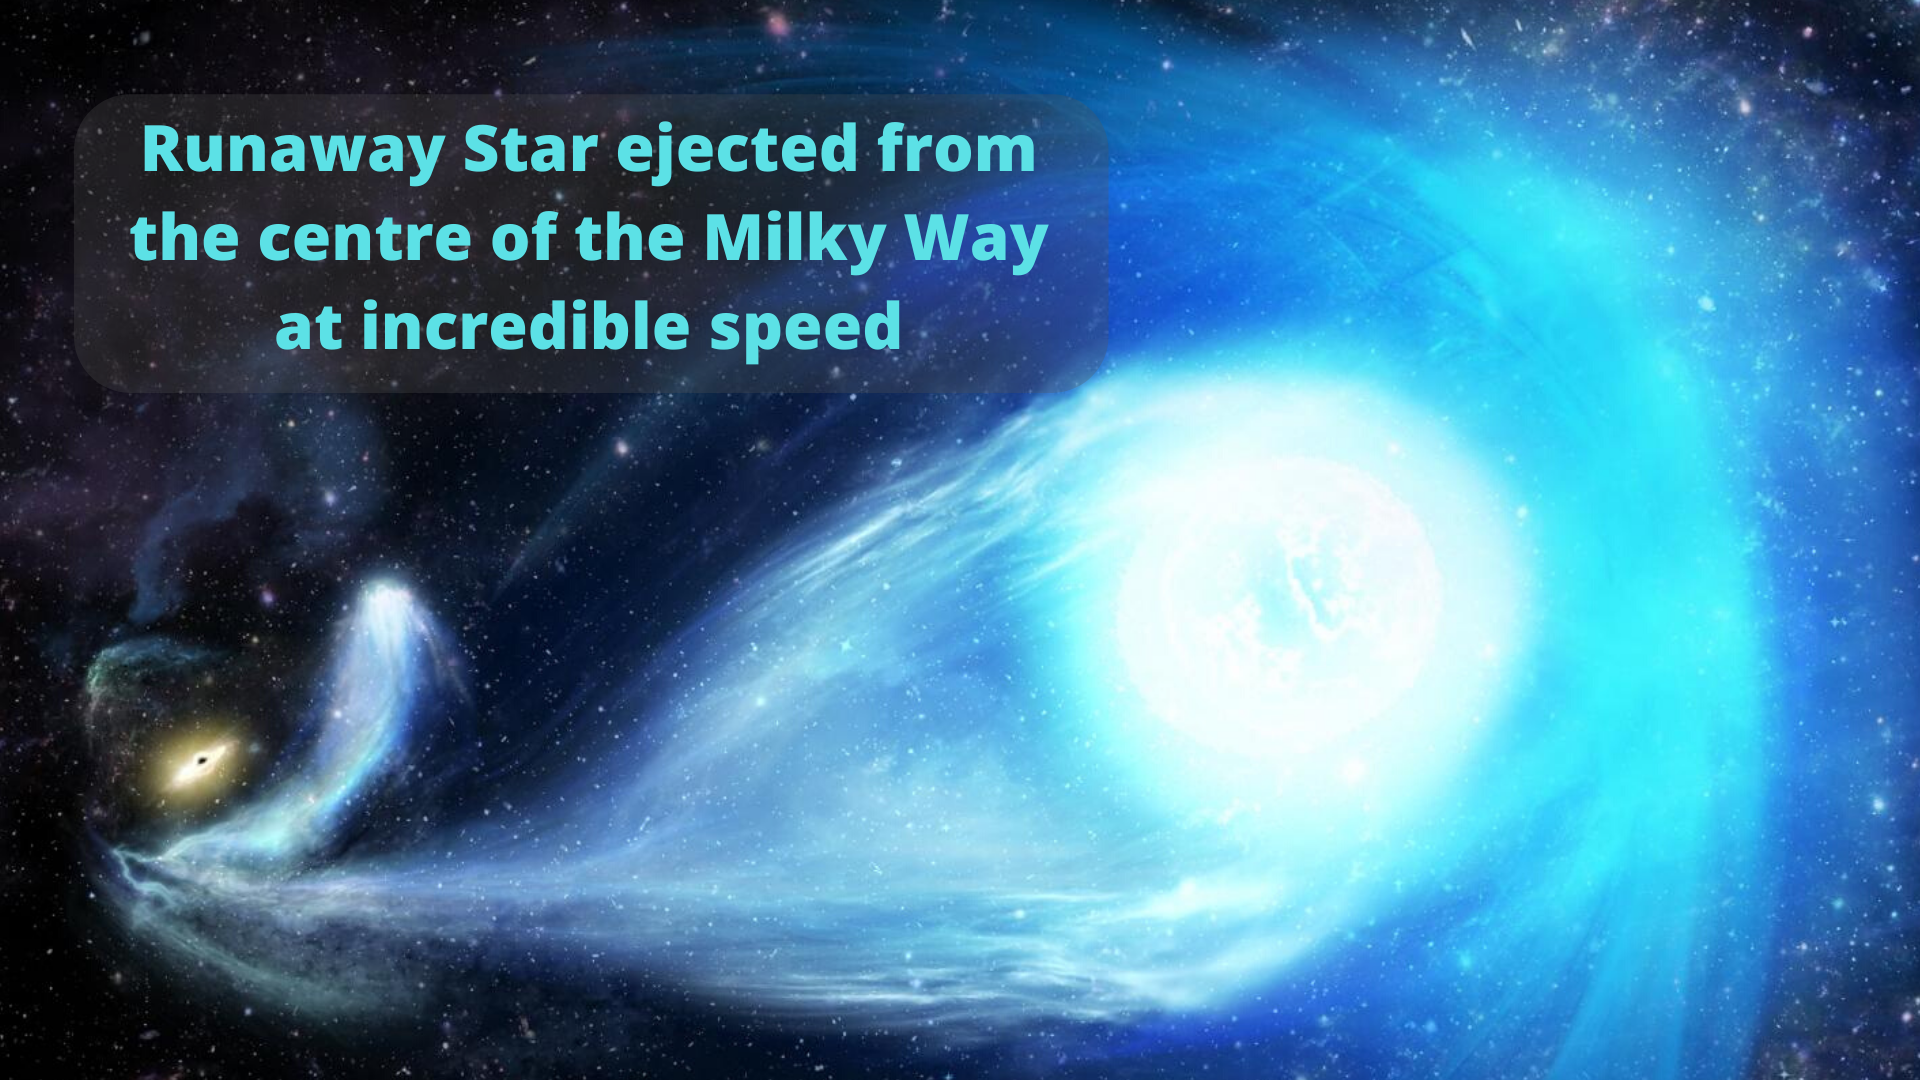 Runaway Star Ejected From The Centre Of The Milky Way At Incredible Speed By Robert Lea Predict Medium